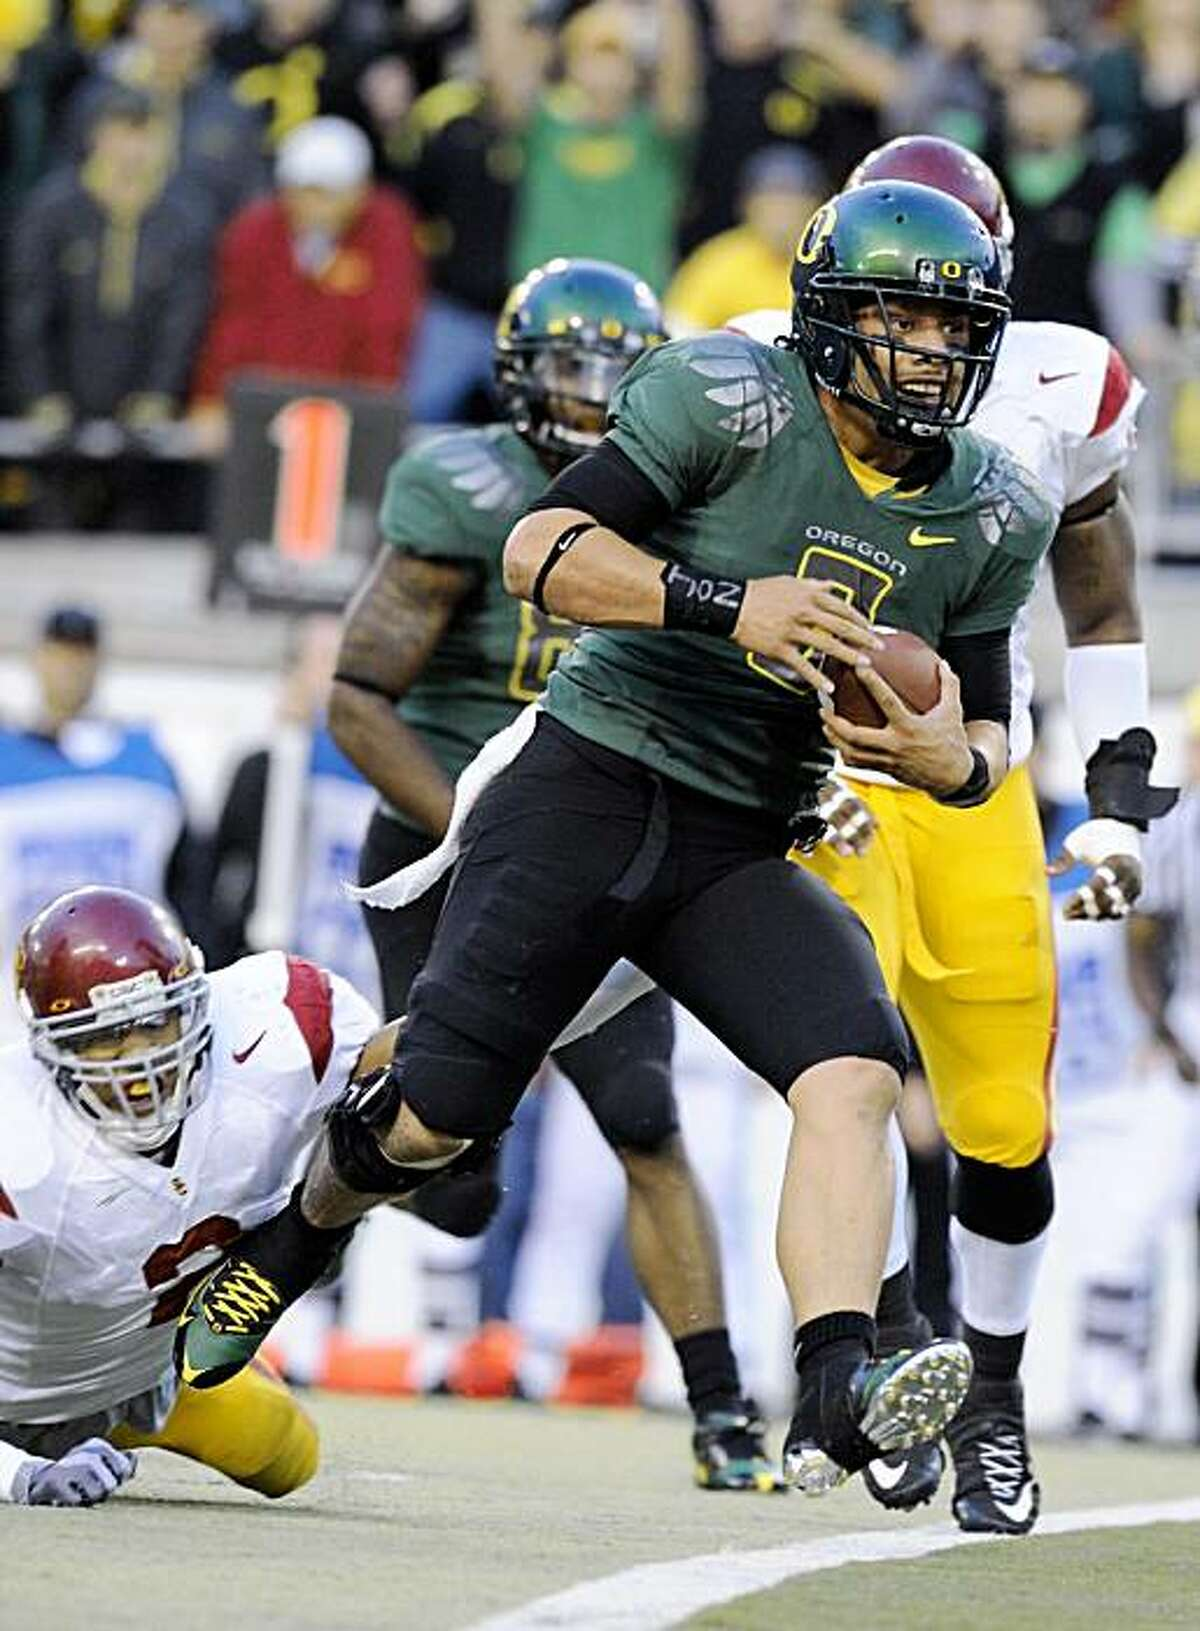 EUGENE, OR - OCTOBER 31: Quarterback Jeremiah Masoli #8 of the Oregon Ducks breaks the tackle of safety Taylor Mays #2 as he scores a touchdown in the first quarter of the game at Autzen Stadium on October 31, 2009 in Eugene, Oregon. (Photo by Steve Dykes/Getty Images)